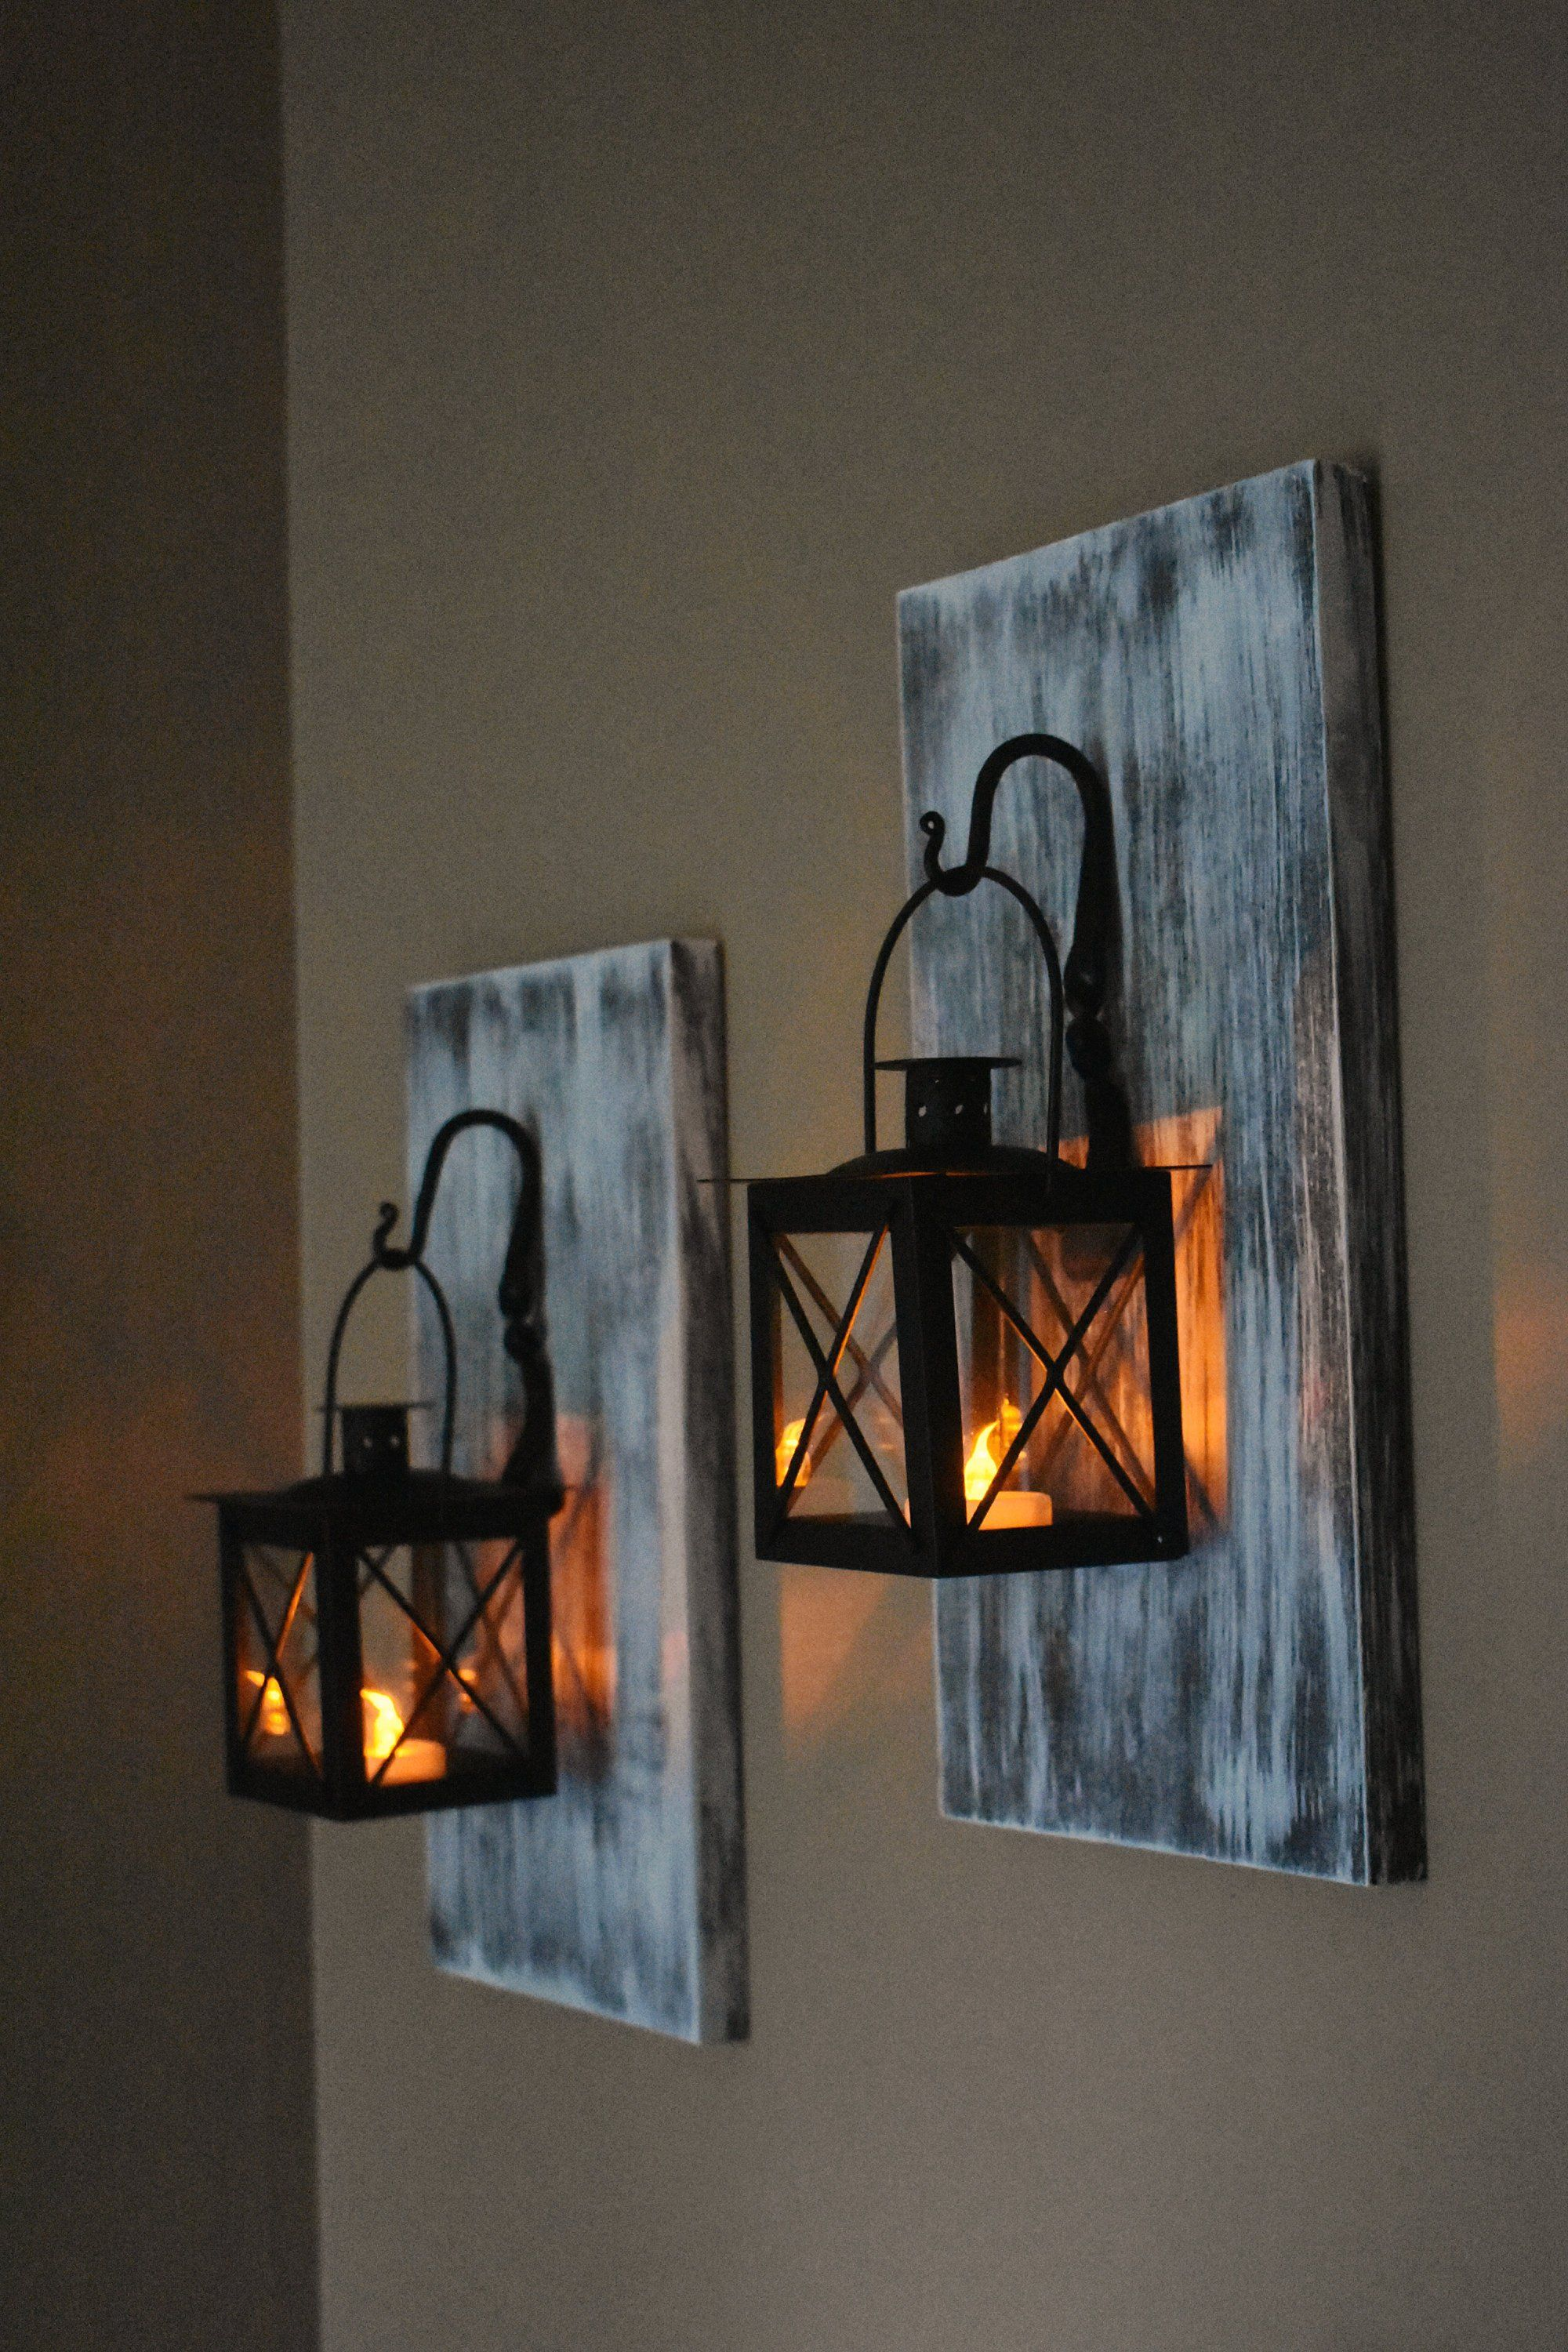 Candle Sconces Wall Decorations Wood Wall Sconce Wall Decor